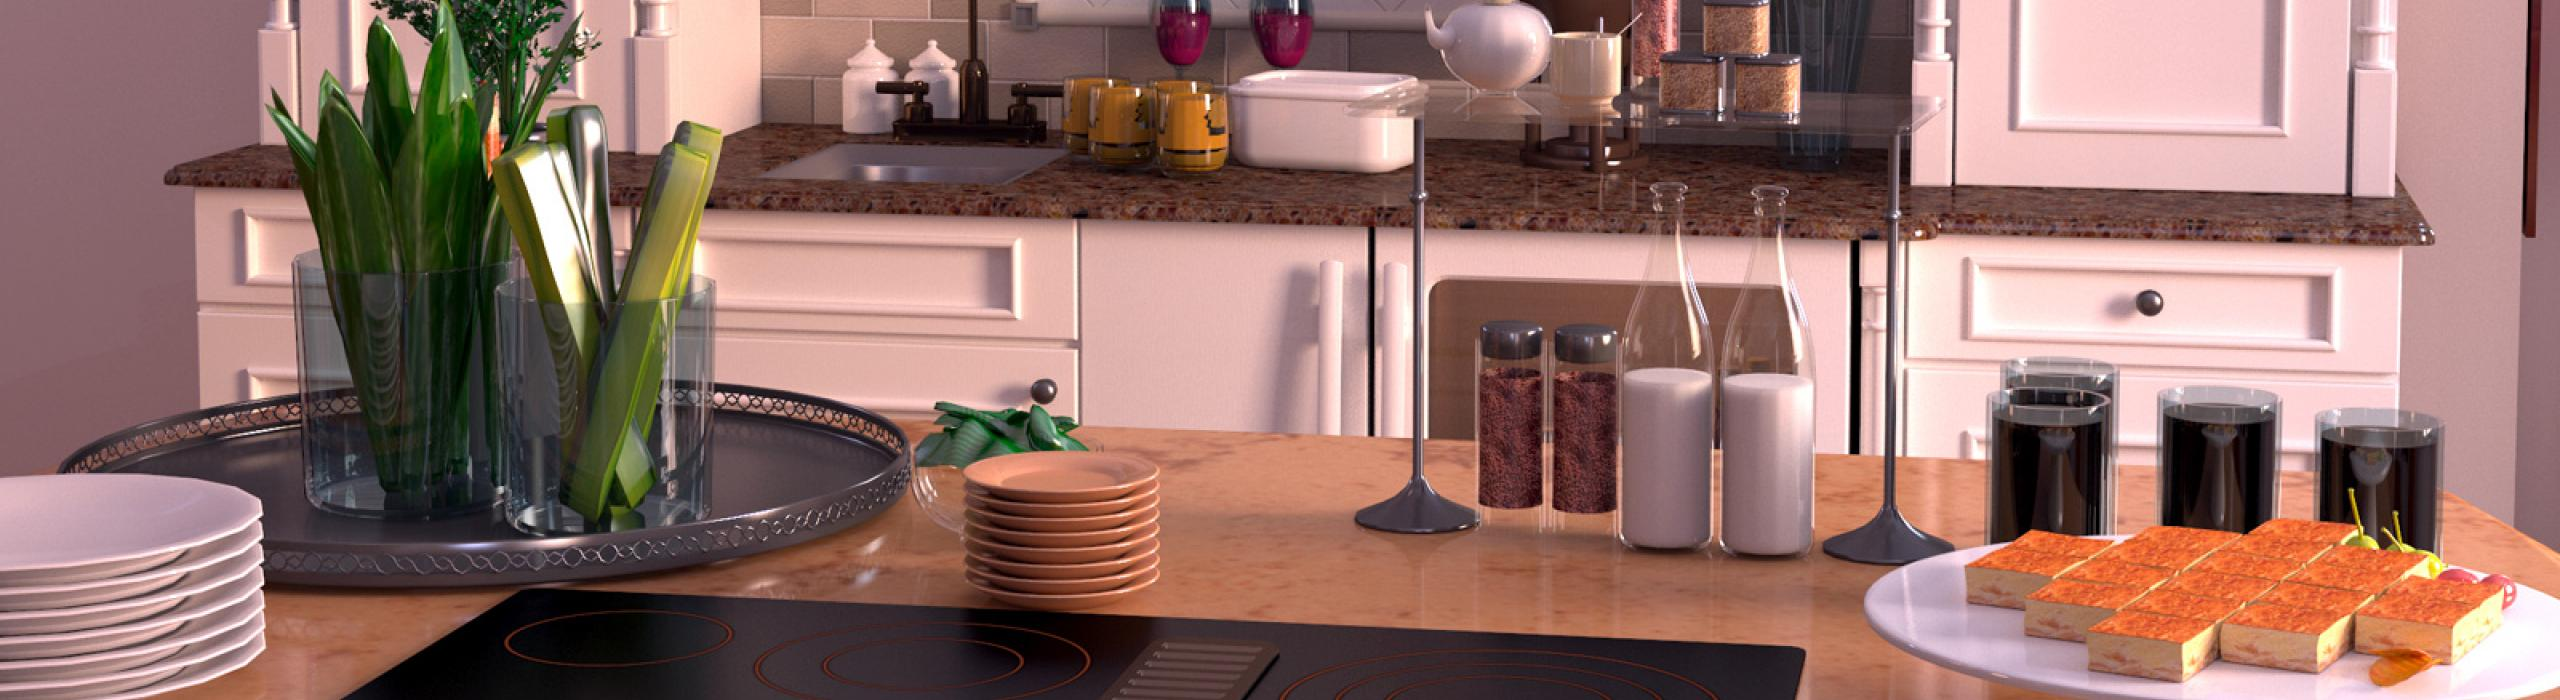 3d Rendered Kitchen Scene